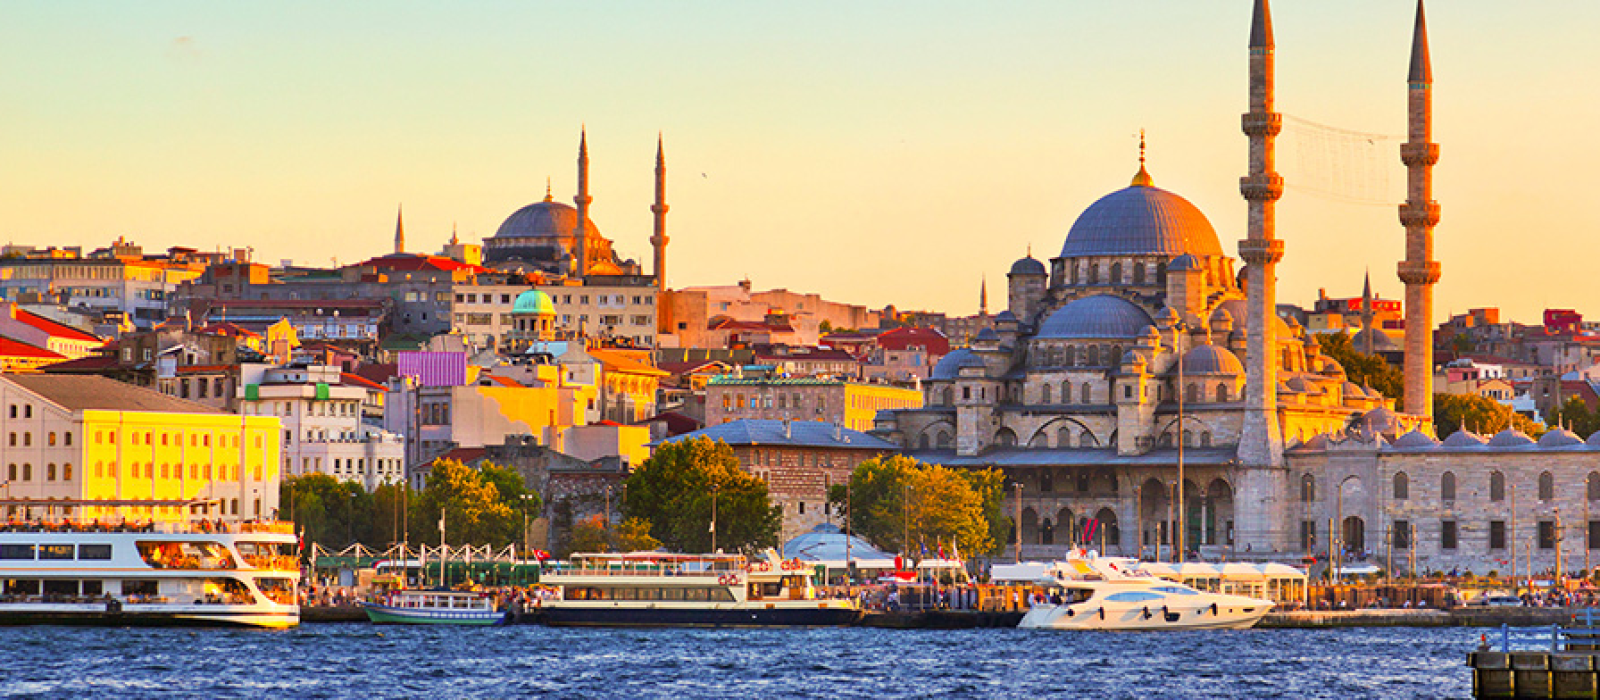 5 days in Istanbul – Must see places?